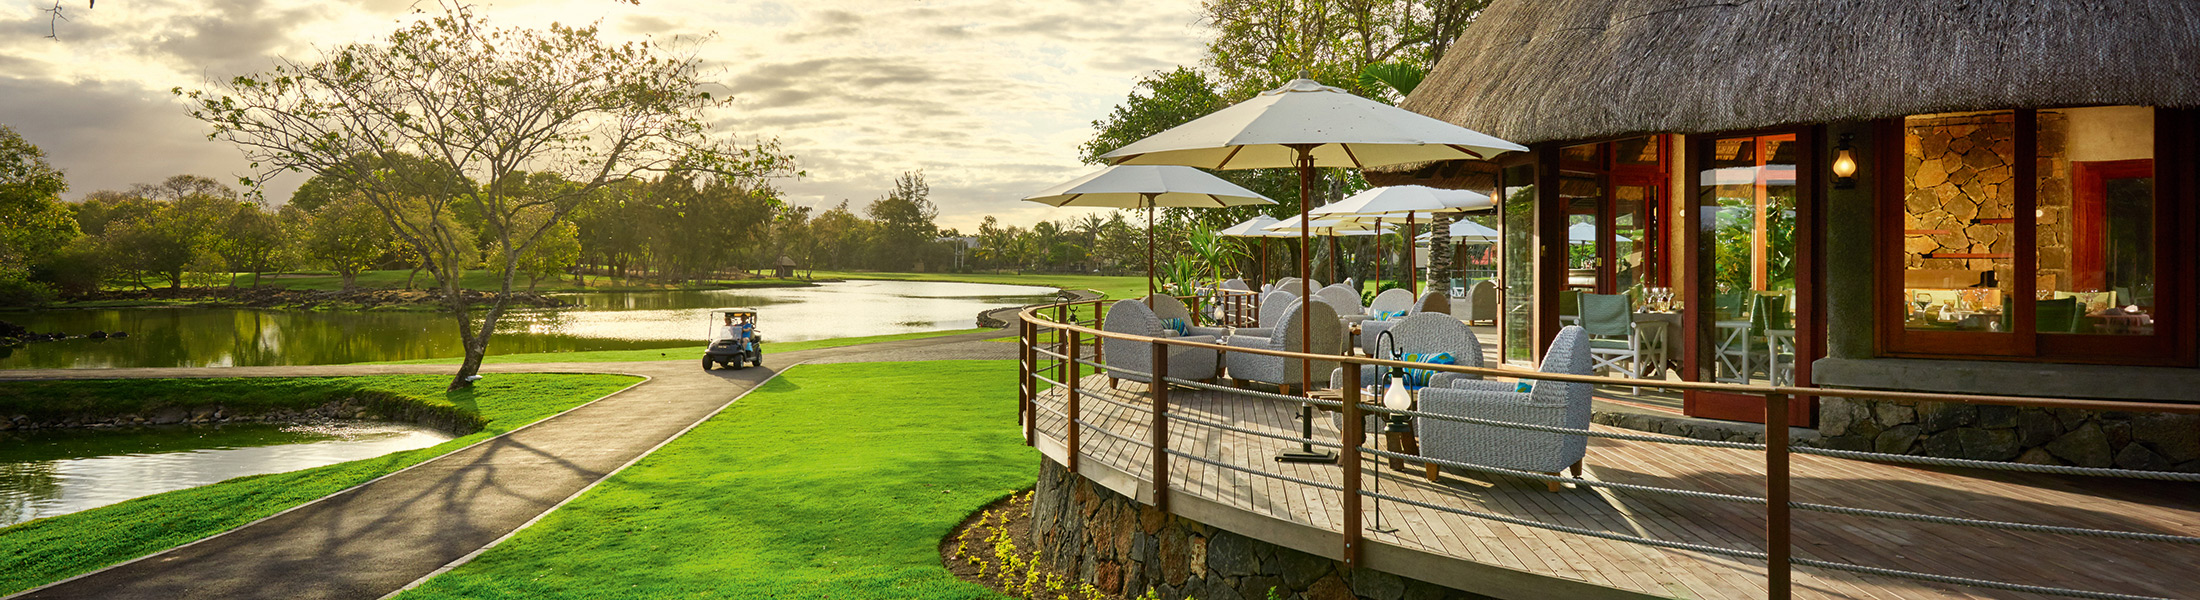 Restaurant overlooking the golf course at Constance Belle Mare Plage